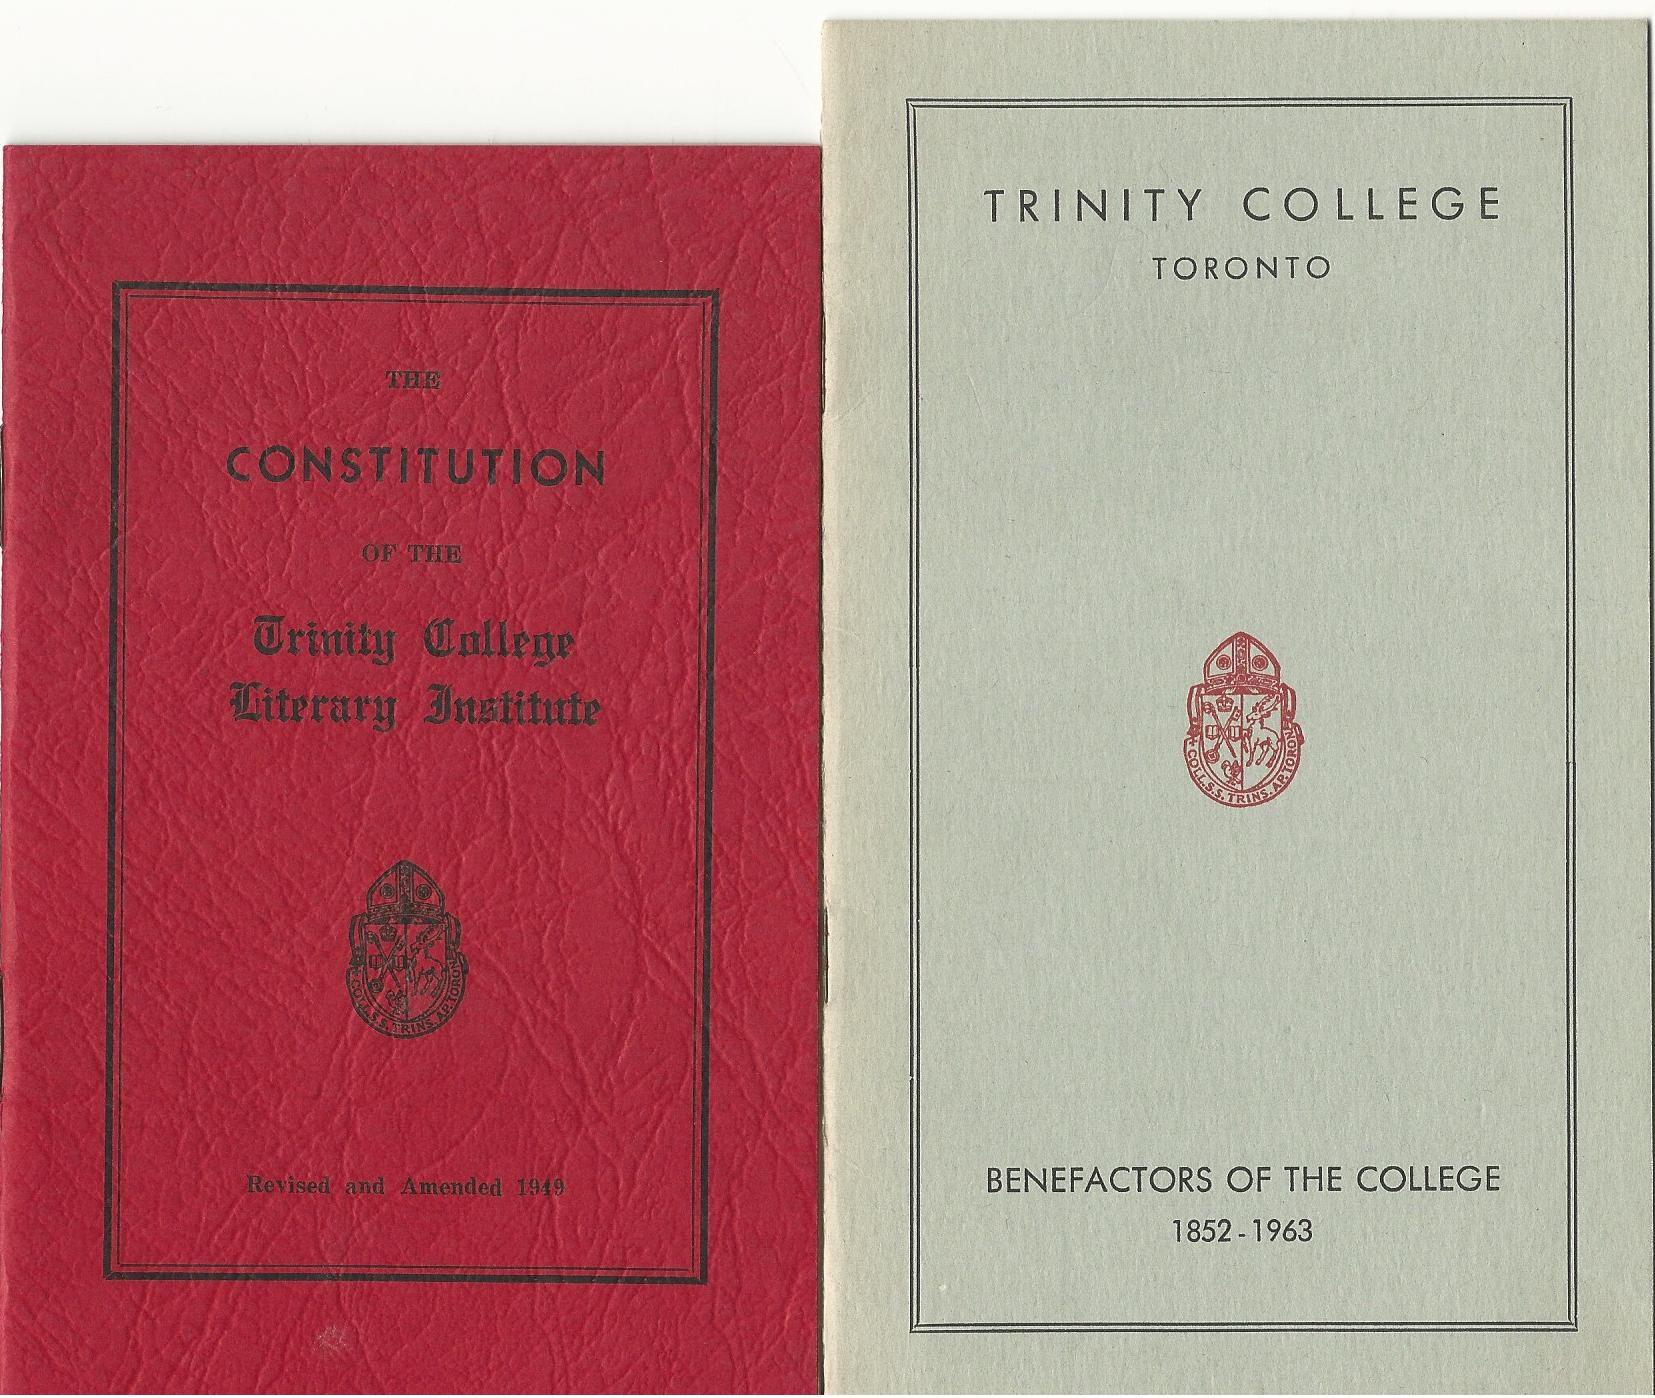 Image for Trinity College Toronto: Benefactors of the College 1852-1963 & The Constitution of the Trinity College Literary Institute 1949